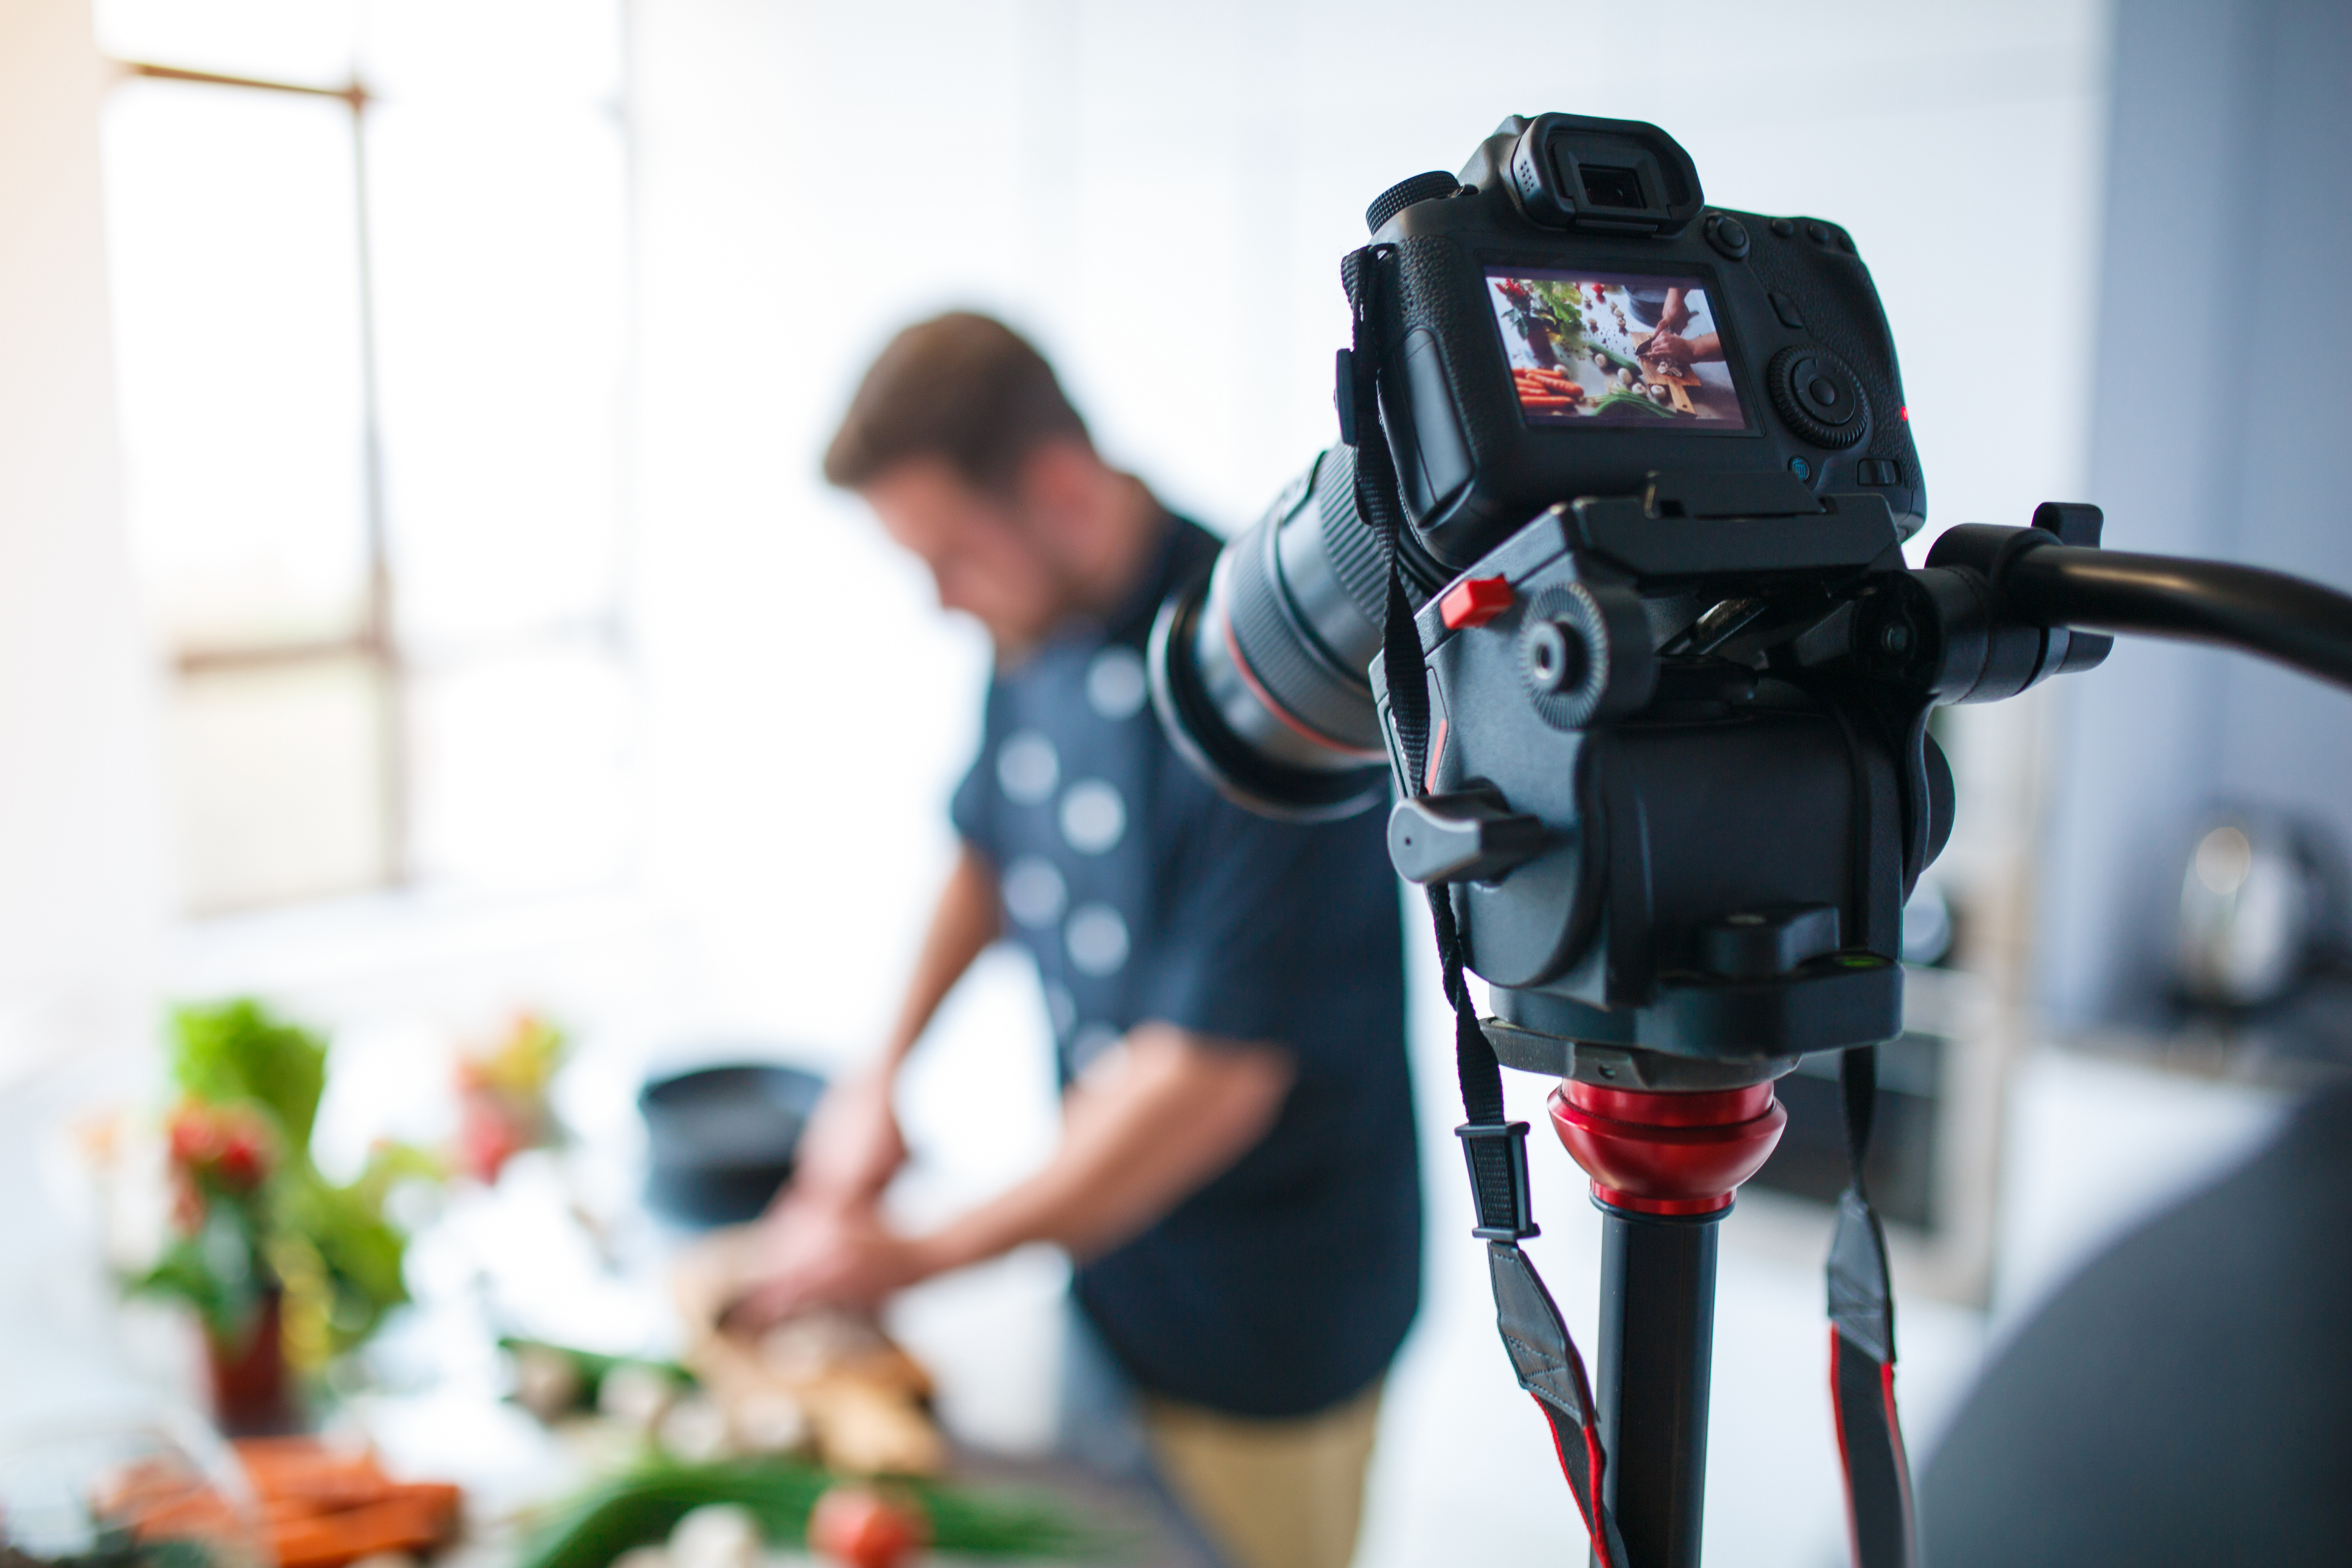 The camera takes off the cooking process in the kitchen of a European brunette man.